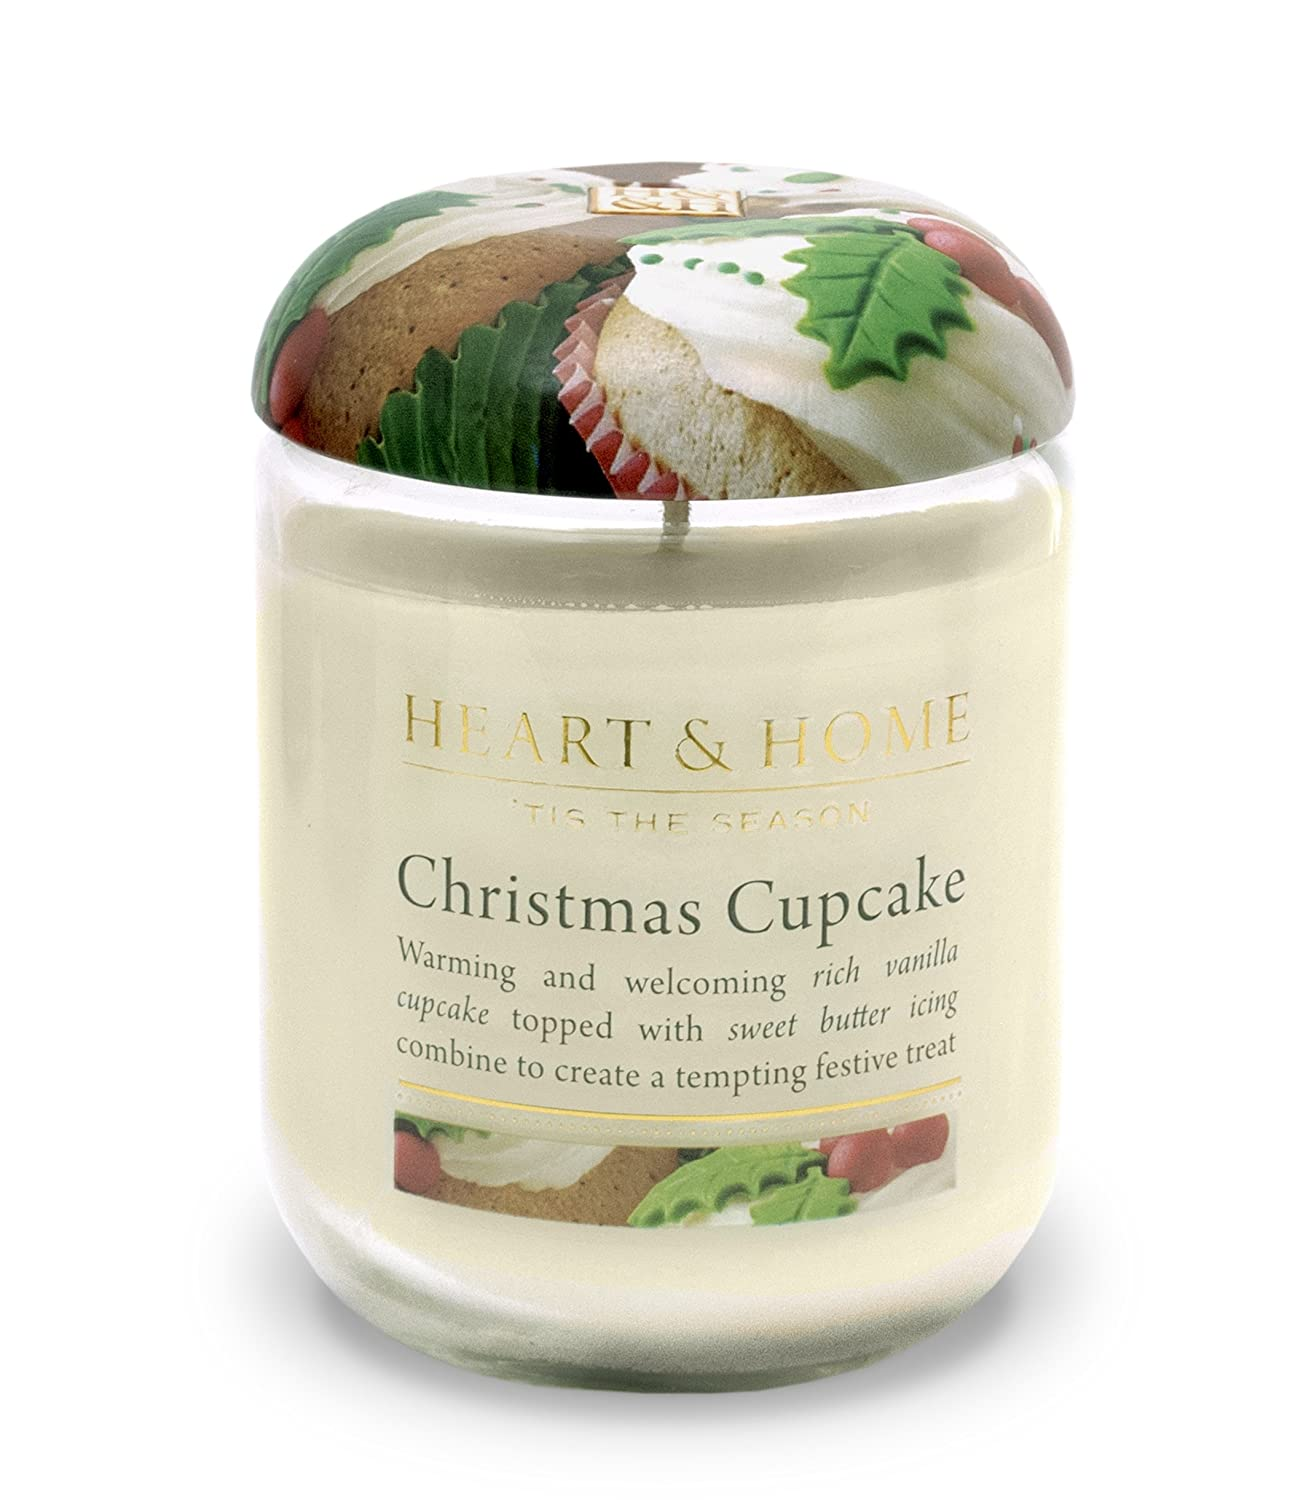 Heart & Home Large Glass Christmas Cupcake Candle History & Heraldry 00275000403